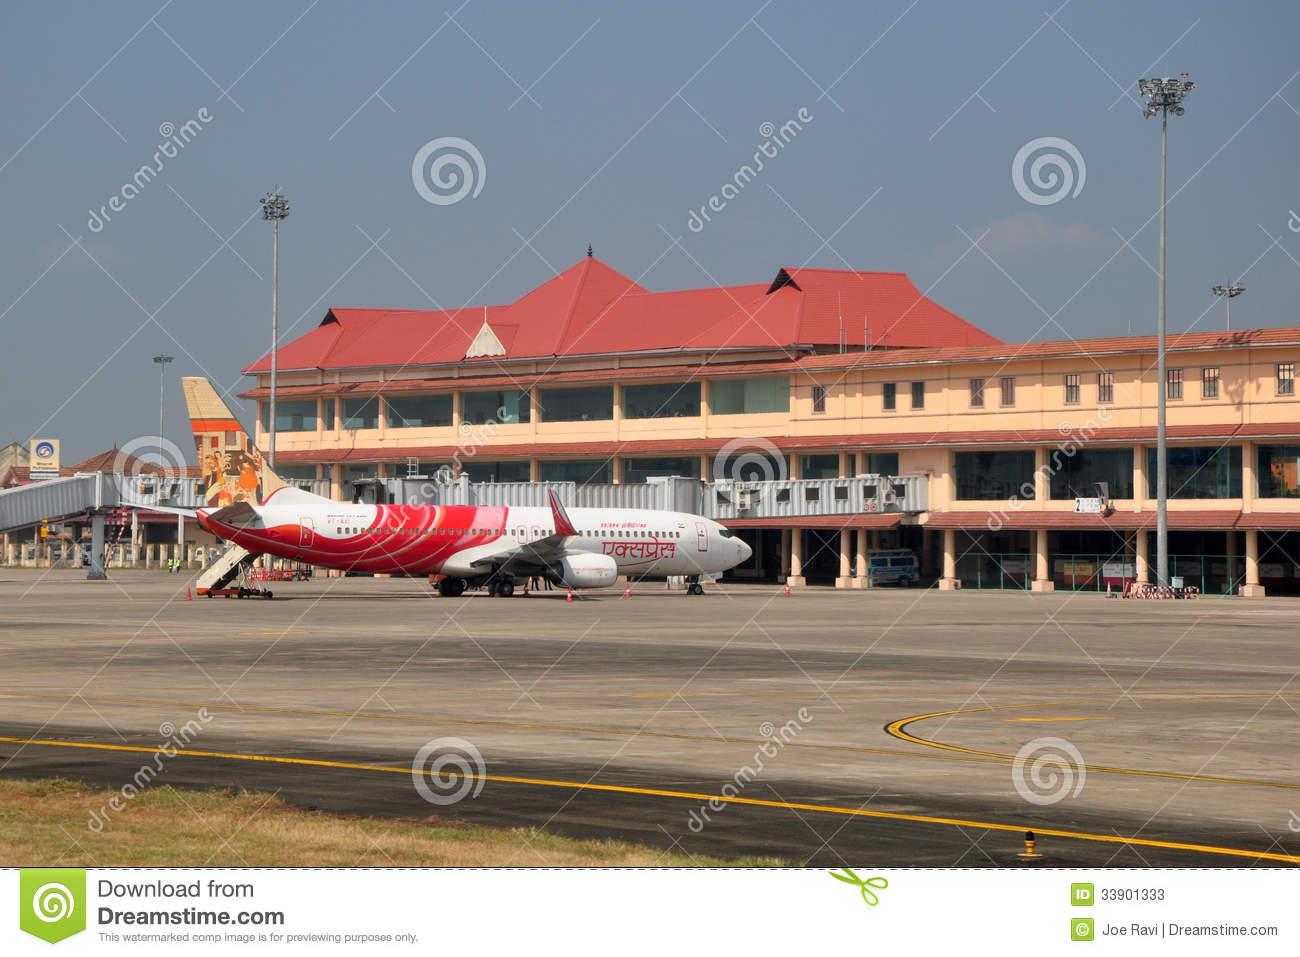 Kochi, India - Jan 10, 2012: An Air India Express Boeing 737 parked at ...